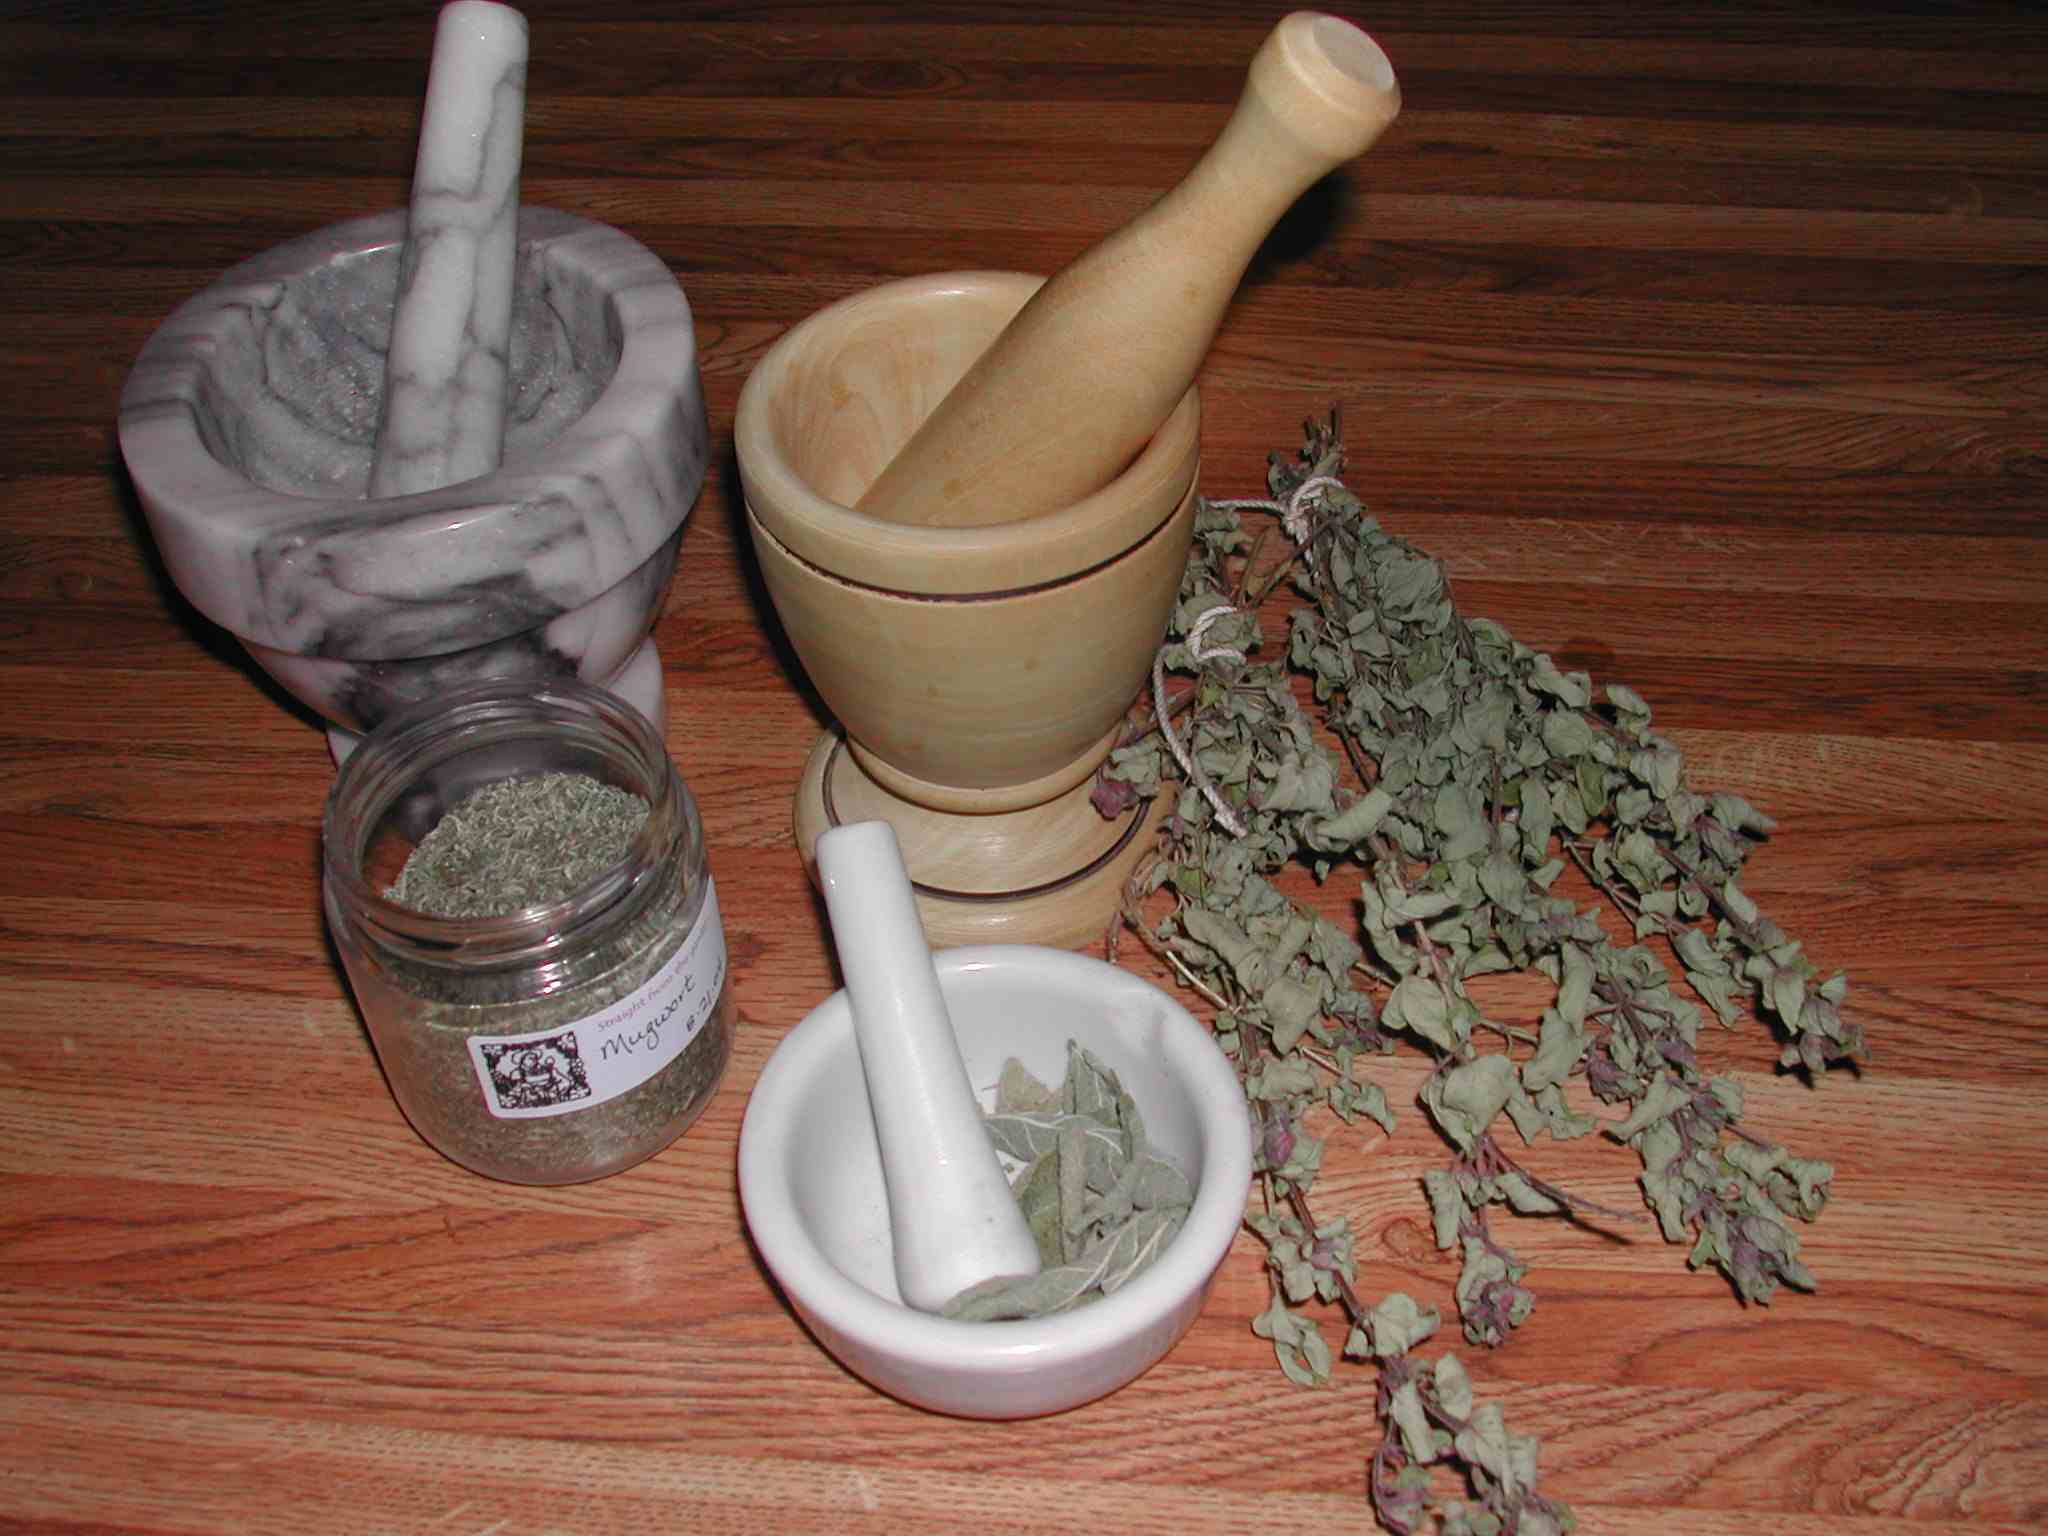 Herbs in mortar and pestle